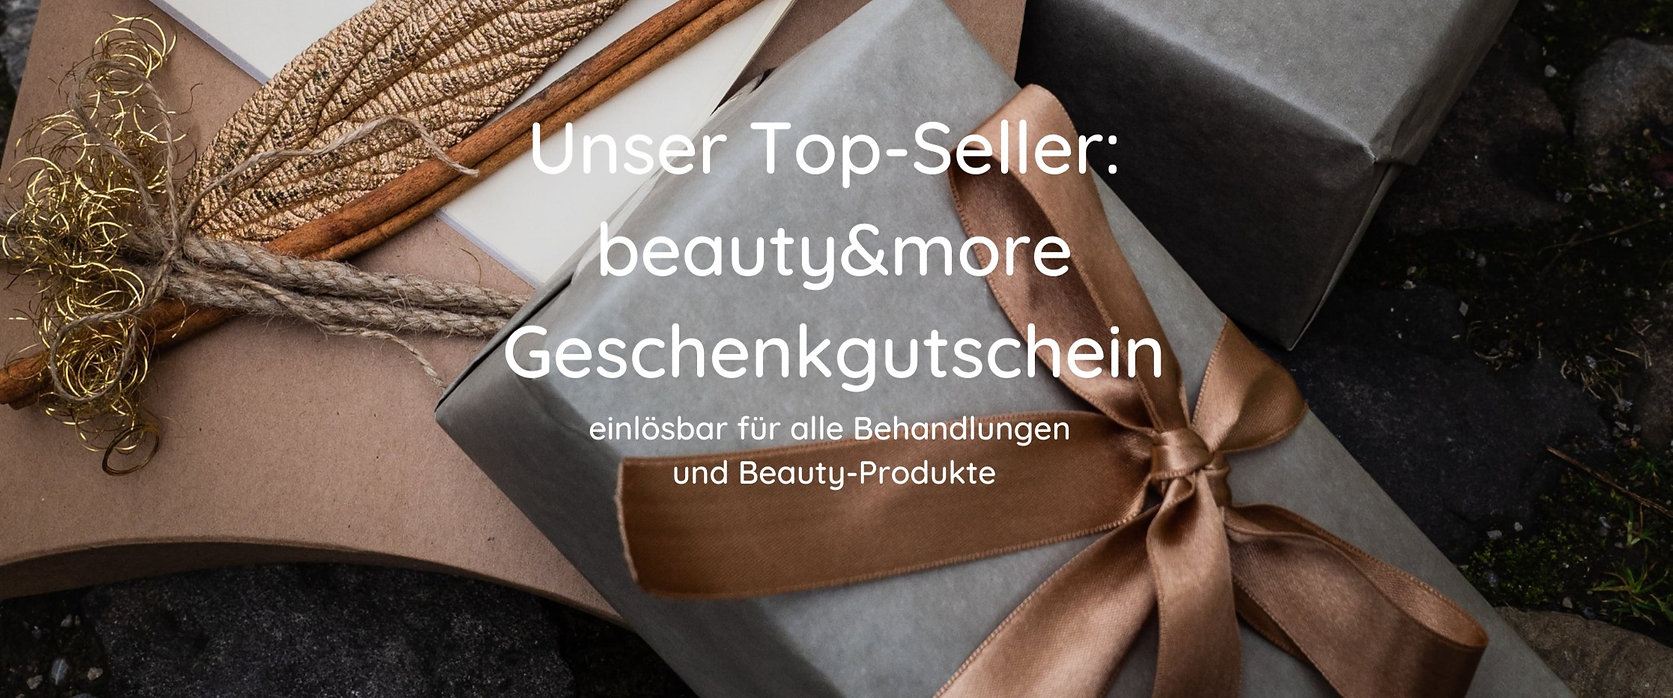 Top-Seller_%20beauty%26more%20Geschenkgu